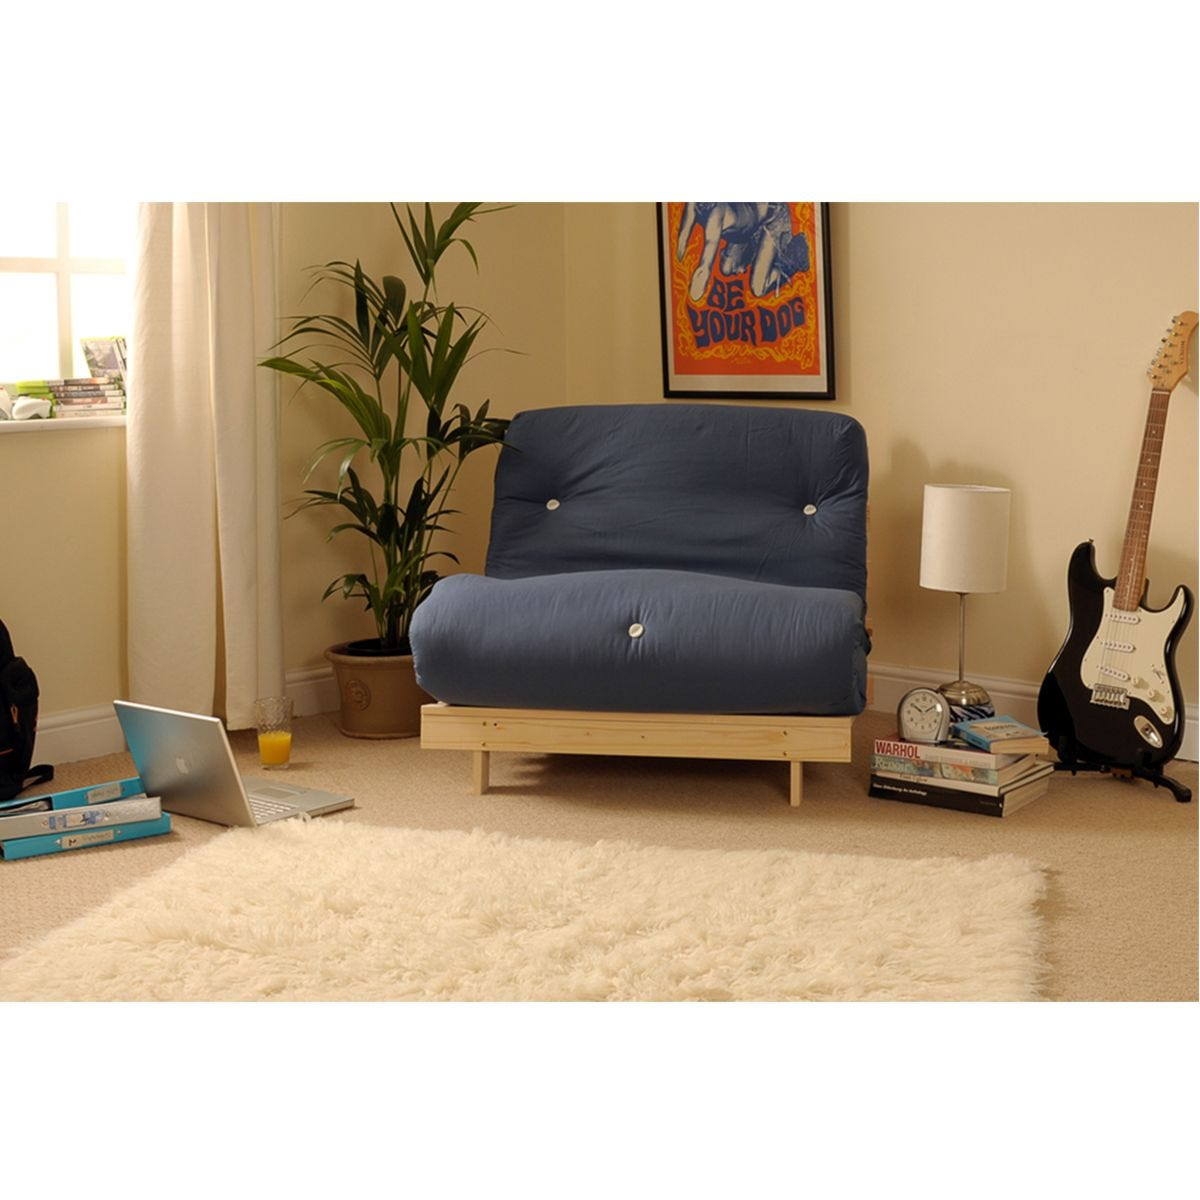 Albury Small Double Sofa Bed Set With Tufted Mattress - Navy